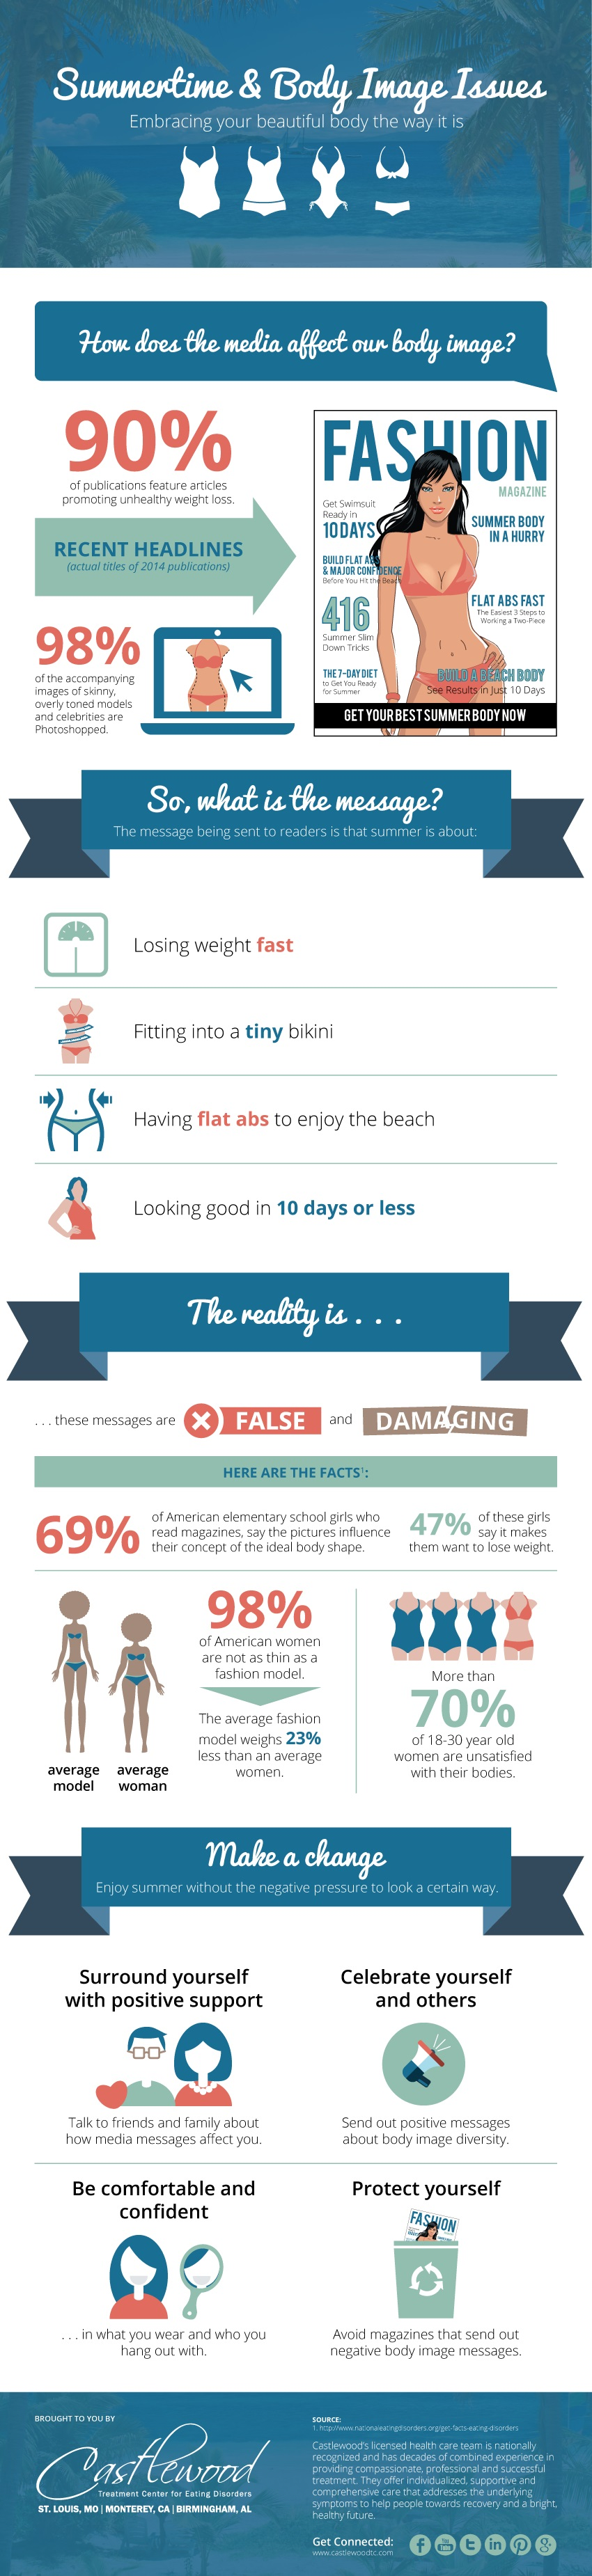 CW-Infographic-Summer-Body-Image-Final